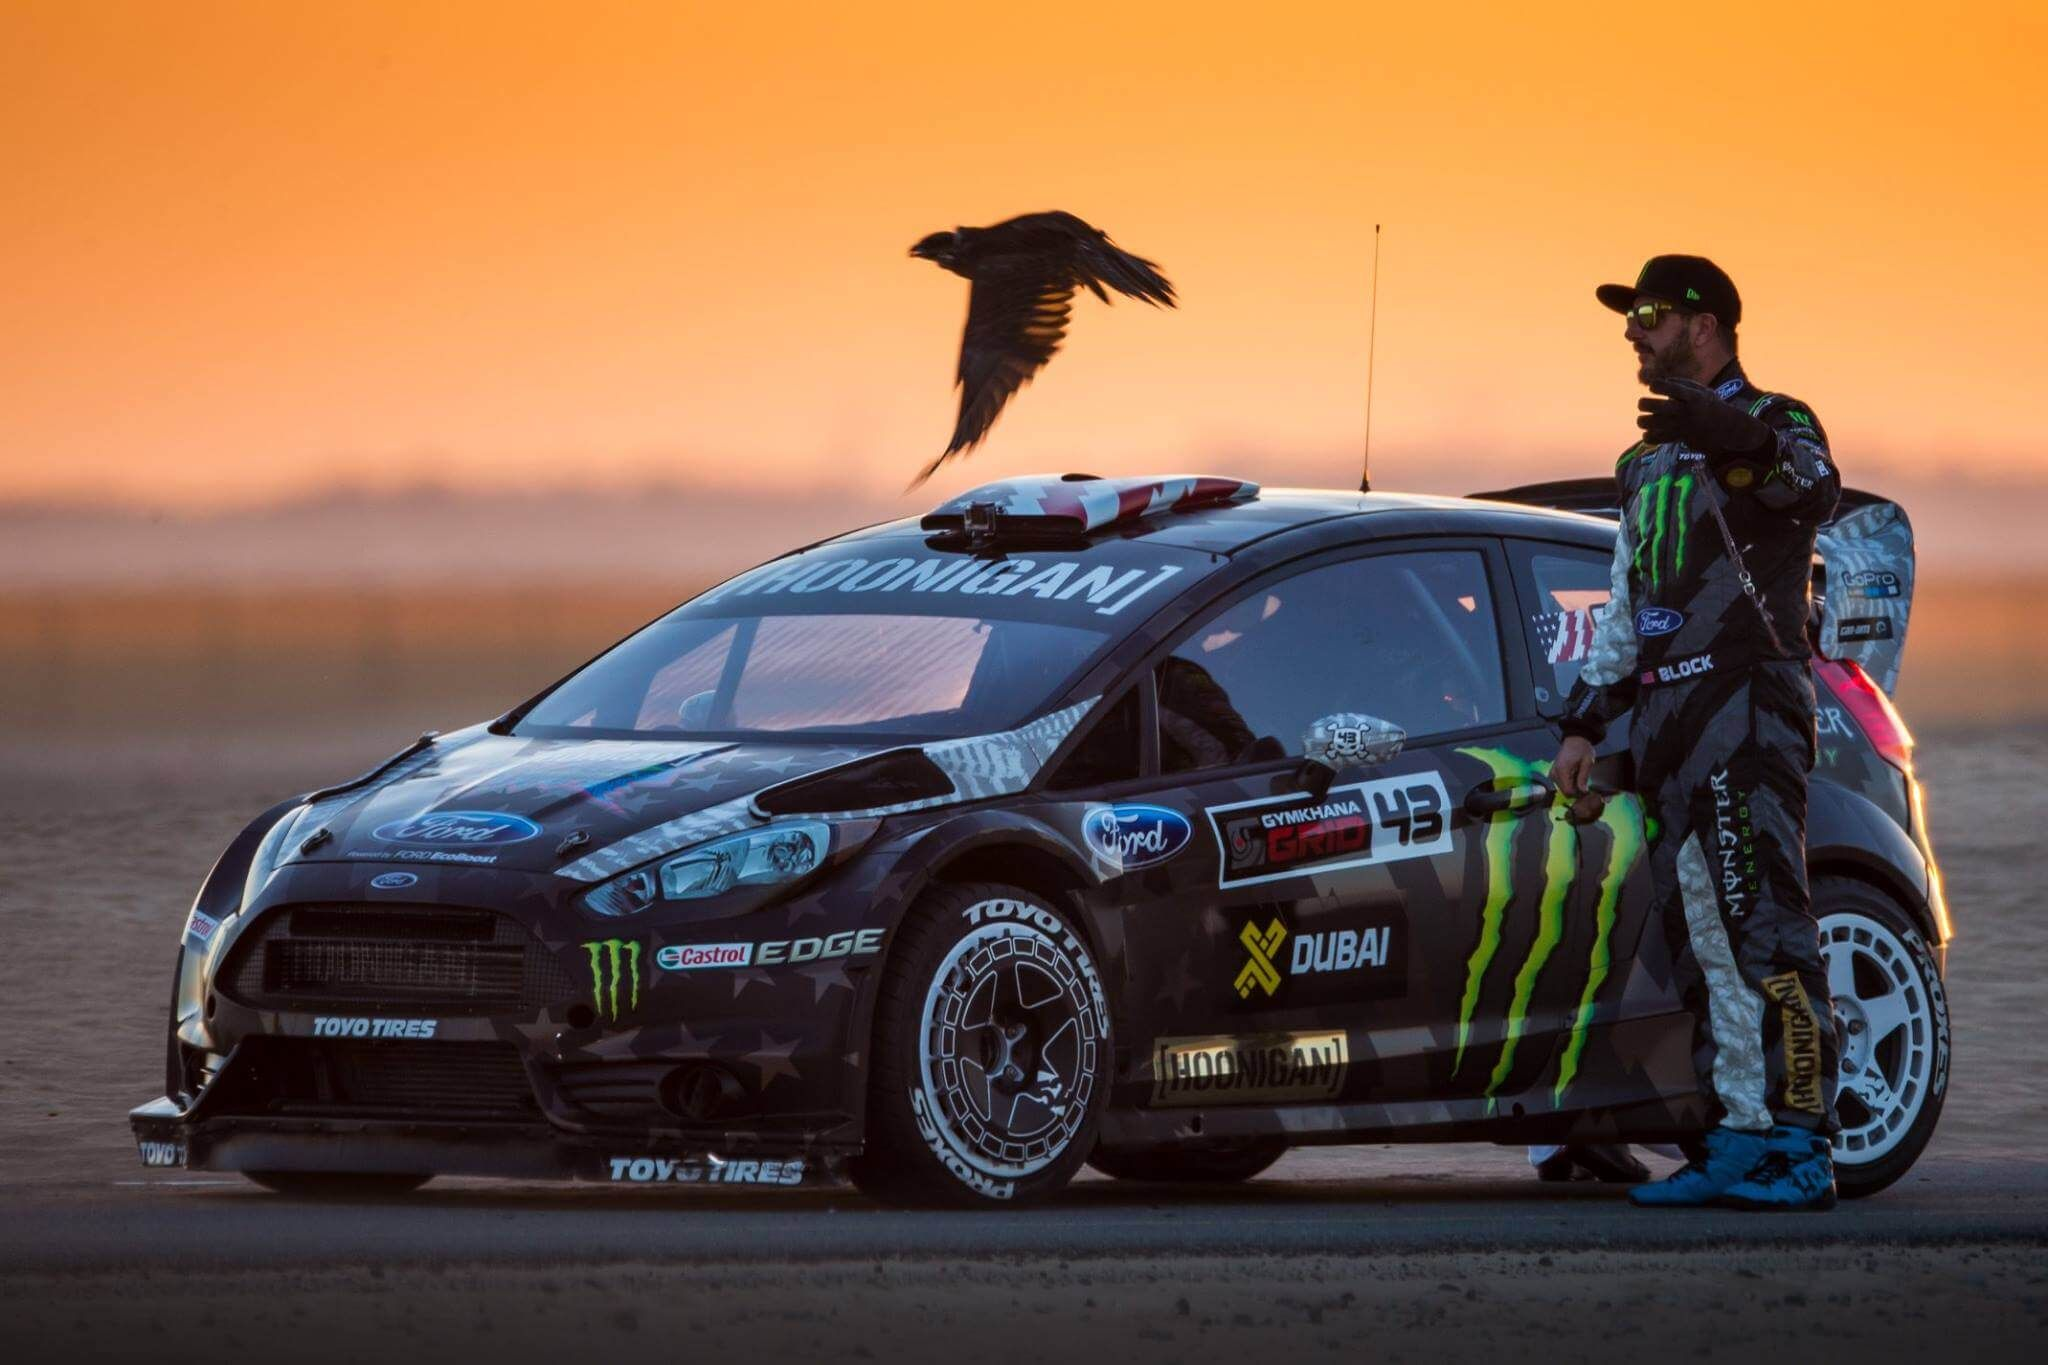 ken block gymkhana 8 dubai eagle drivers pinterest cars drifting cars and sweet cars. Black Bedroom Furniture Sets. Home Design Ideas